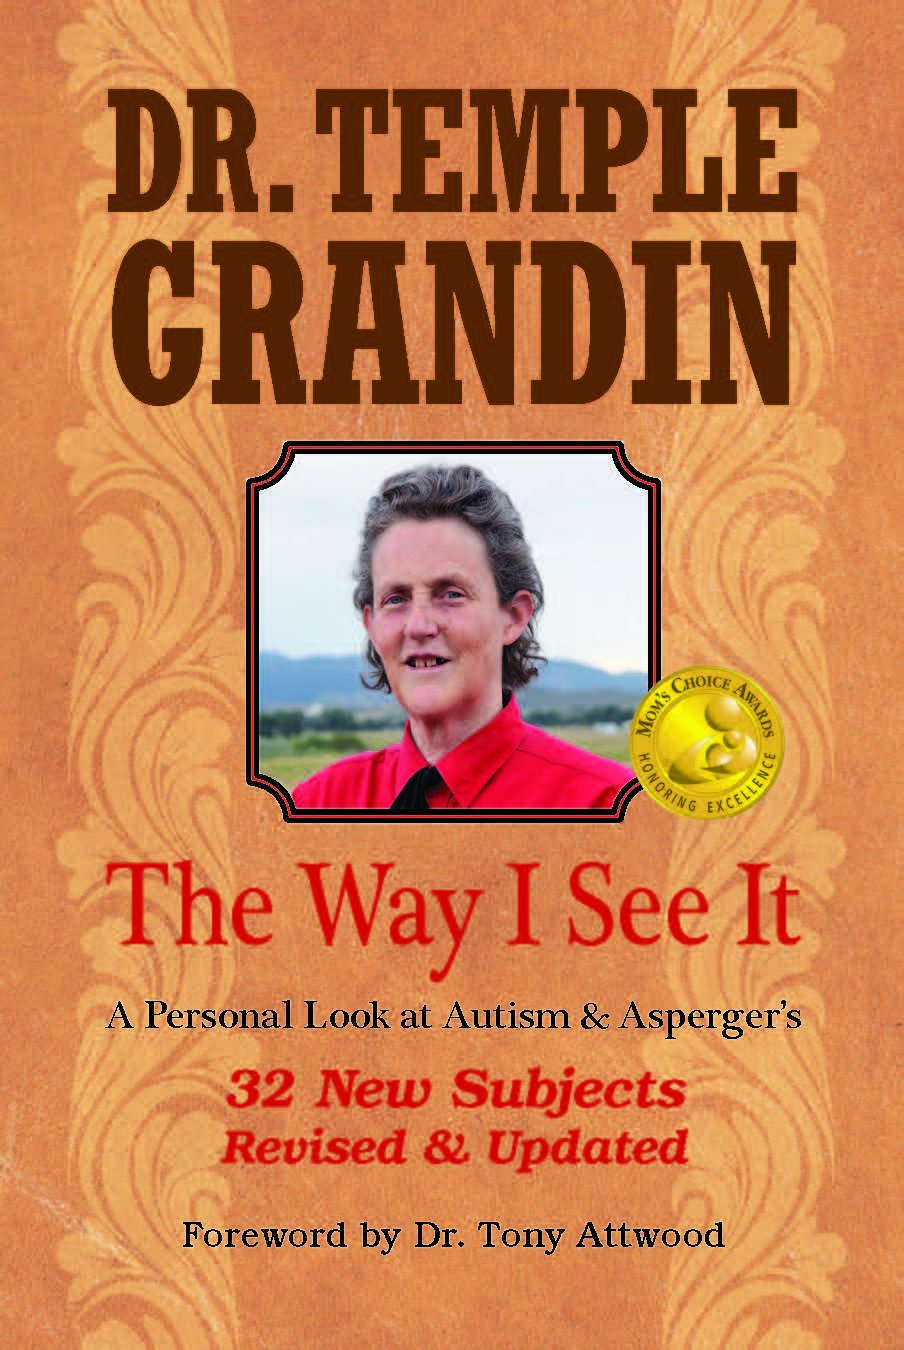 The Way I See It:  A Personal Look at Autism & Asperger's: 32 New Subject Revised & Expanded, 4th Edition PDF